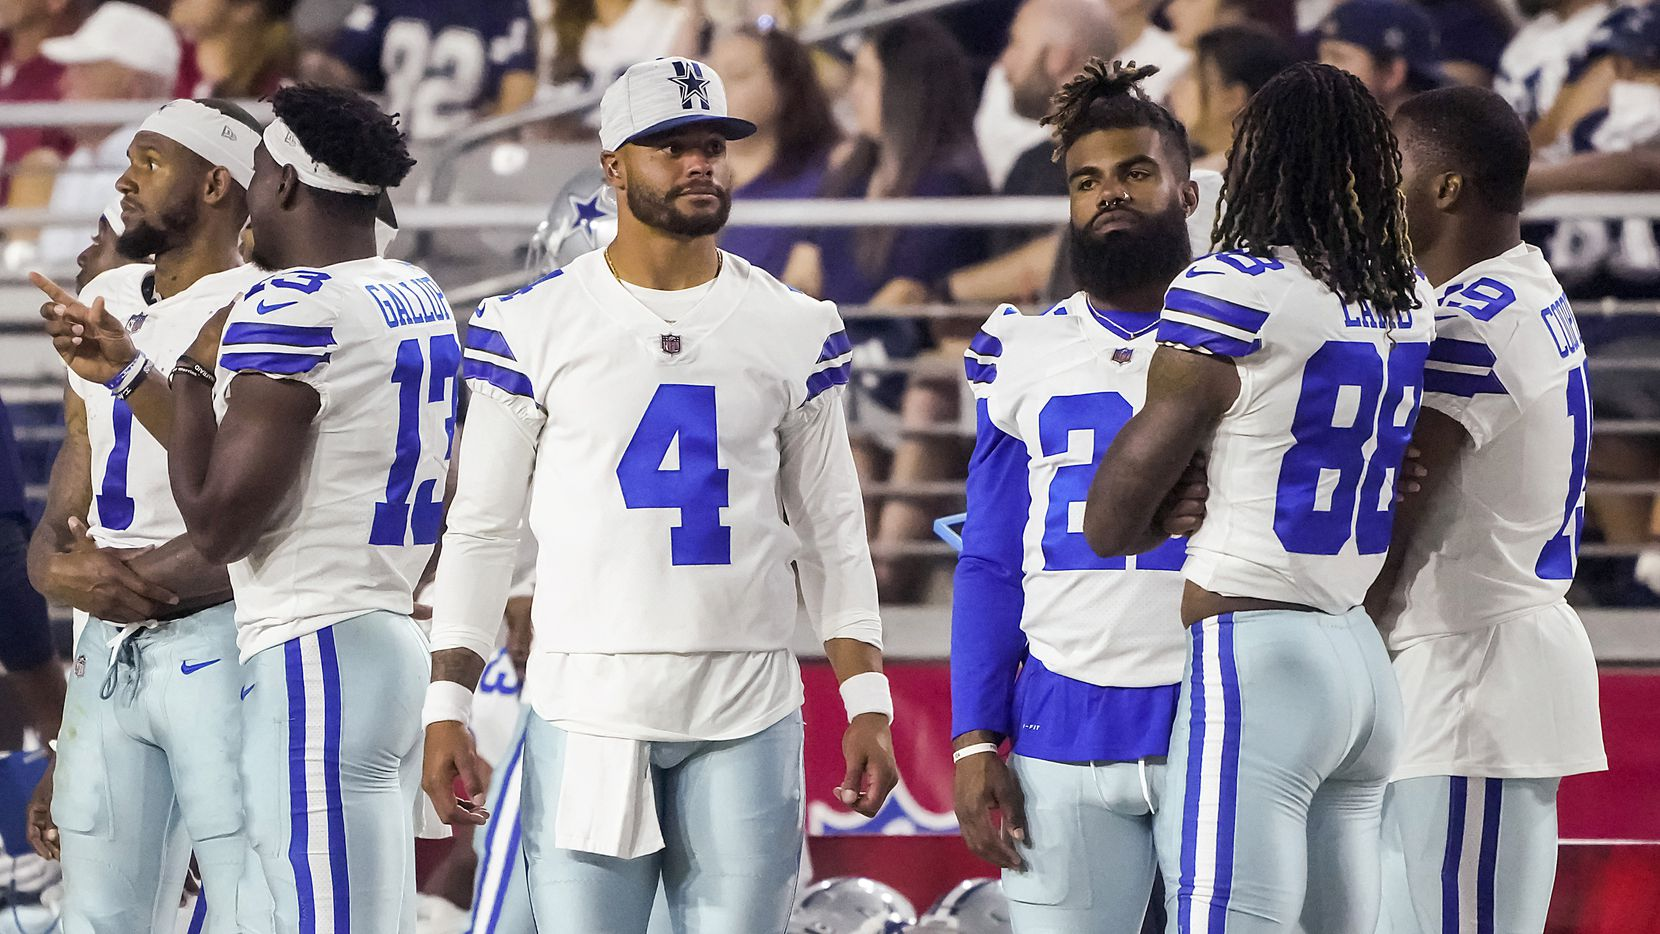 Dallas Cowboys quarterback Dak Prescott (4) watches from the sidelines with wide receiver Cedrick Wilson (1), wide receiver Michael Gallup (13), running back Ezekiel Elliott (21), wide receiver CeeDee Lamb (88) and wide receiver Amari Cooper (19) during the second quarter of an NFL football game against the Arizona Cardinals at State Farm Stadium on Friday, Aug. 13, 2021, in Glendale, Ariz.